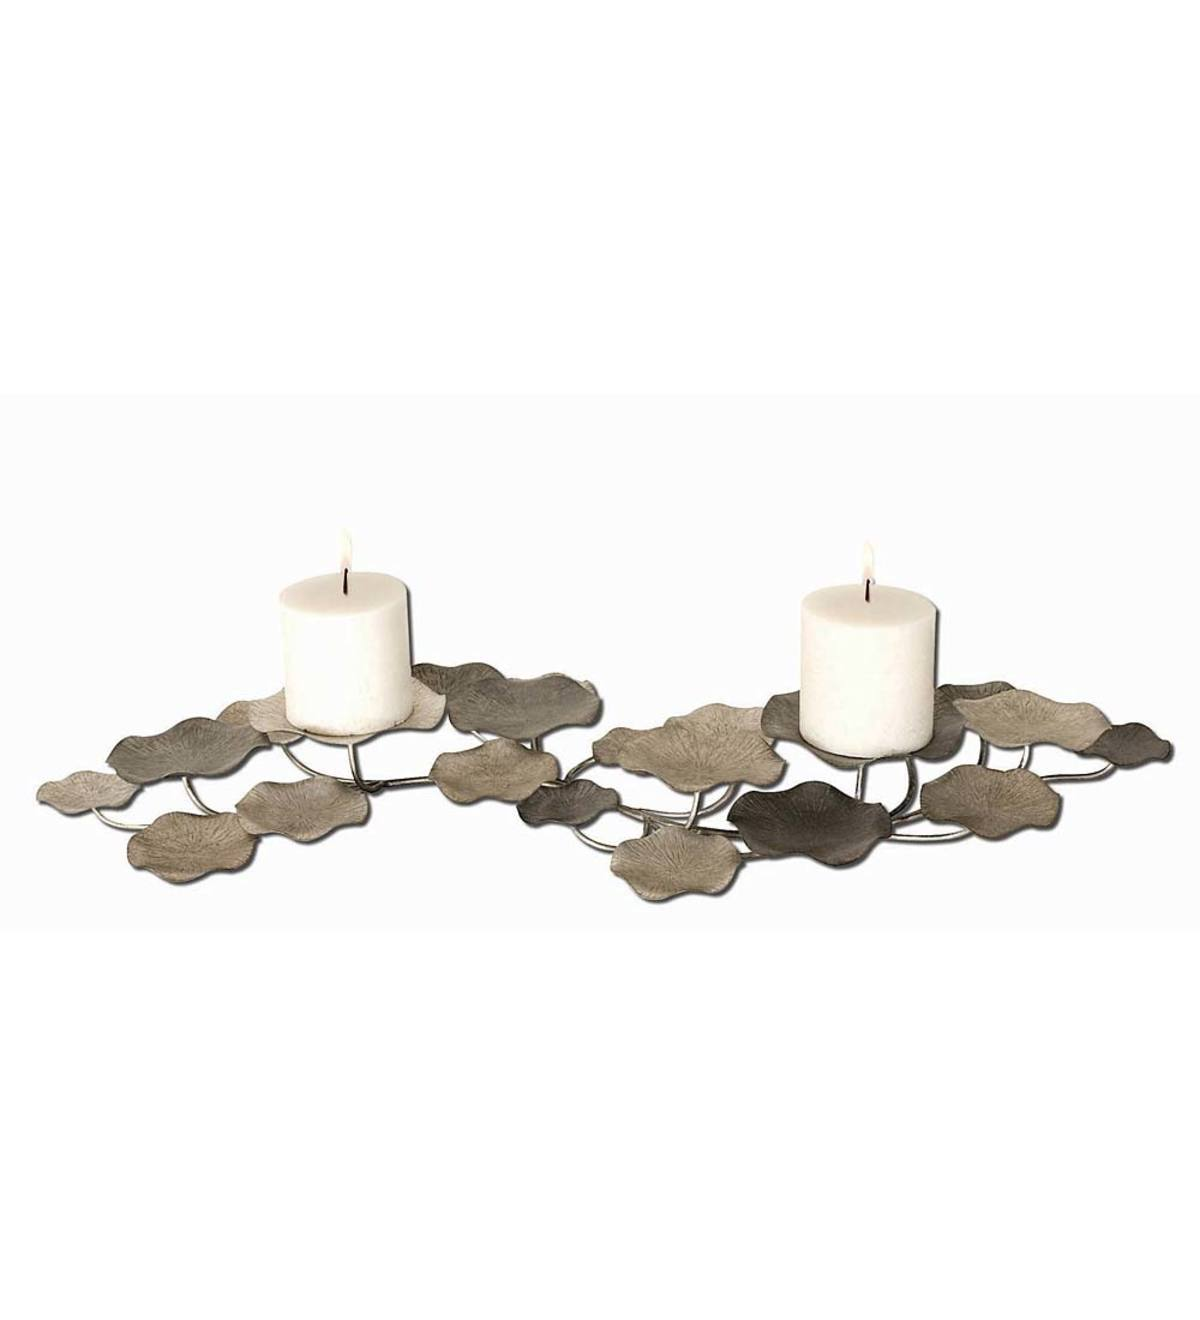 Lying Lotus Candleholder or Wall Decor